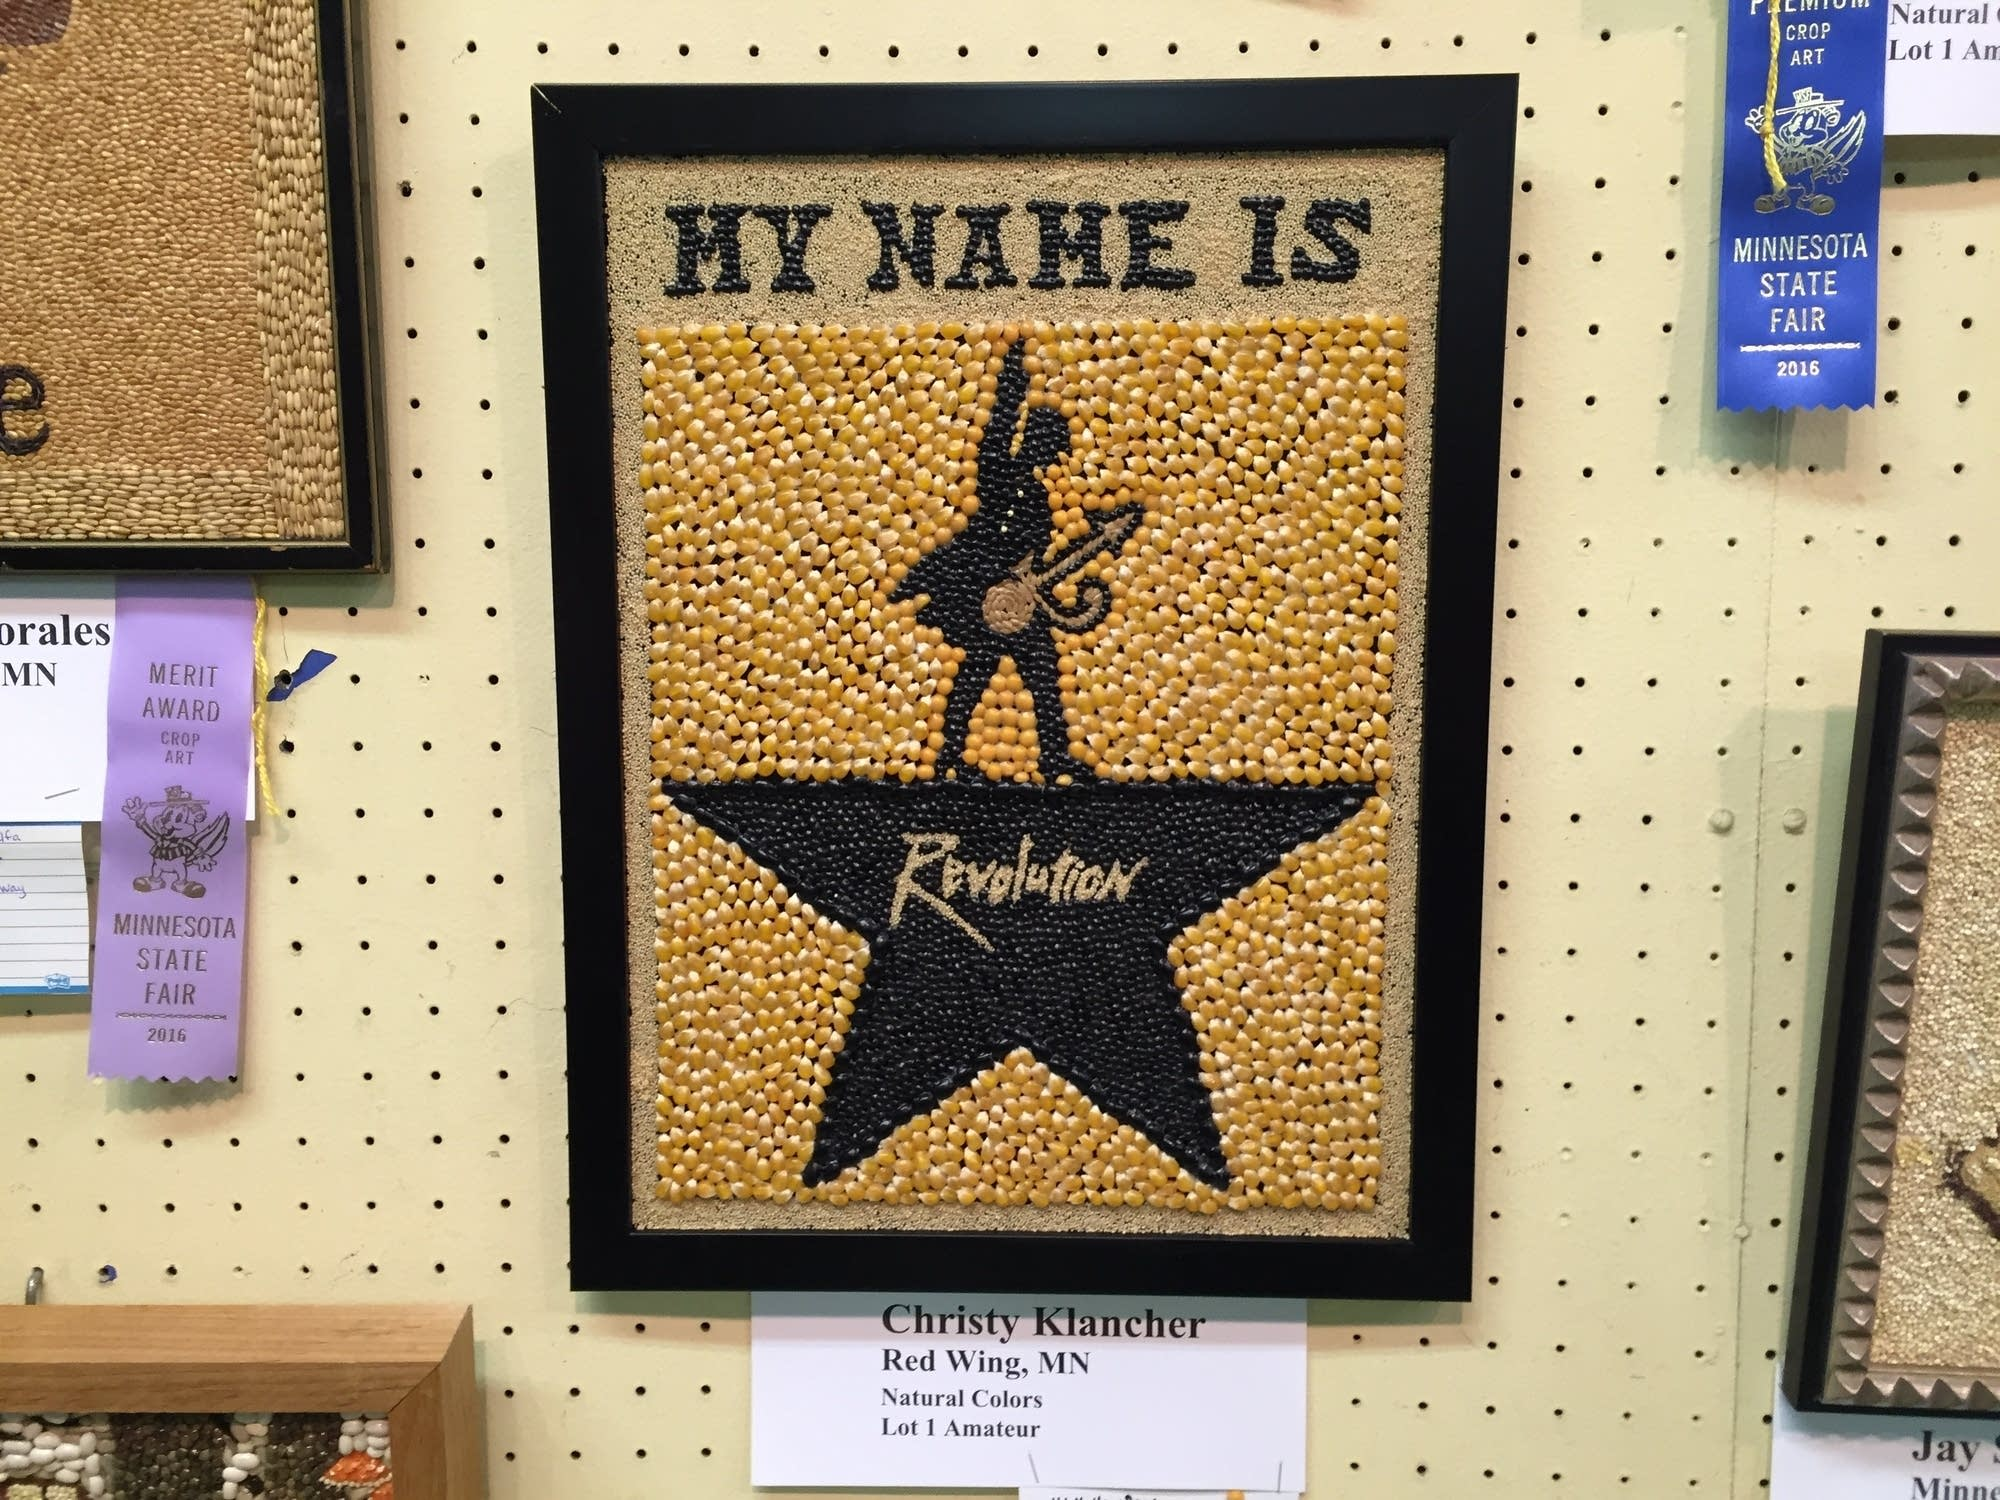 Prince seed art from the 2016 Minnesota State Fair